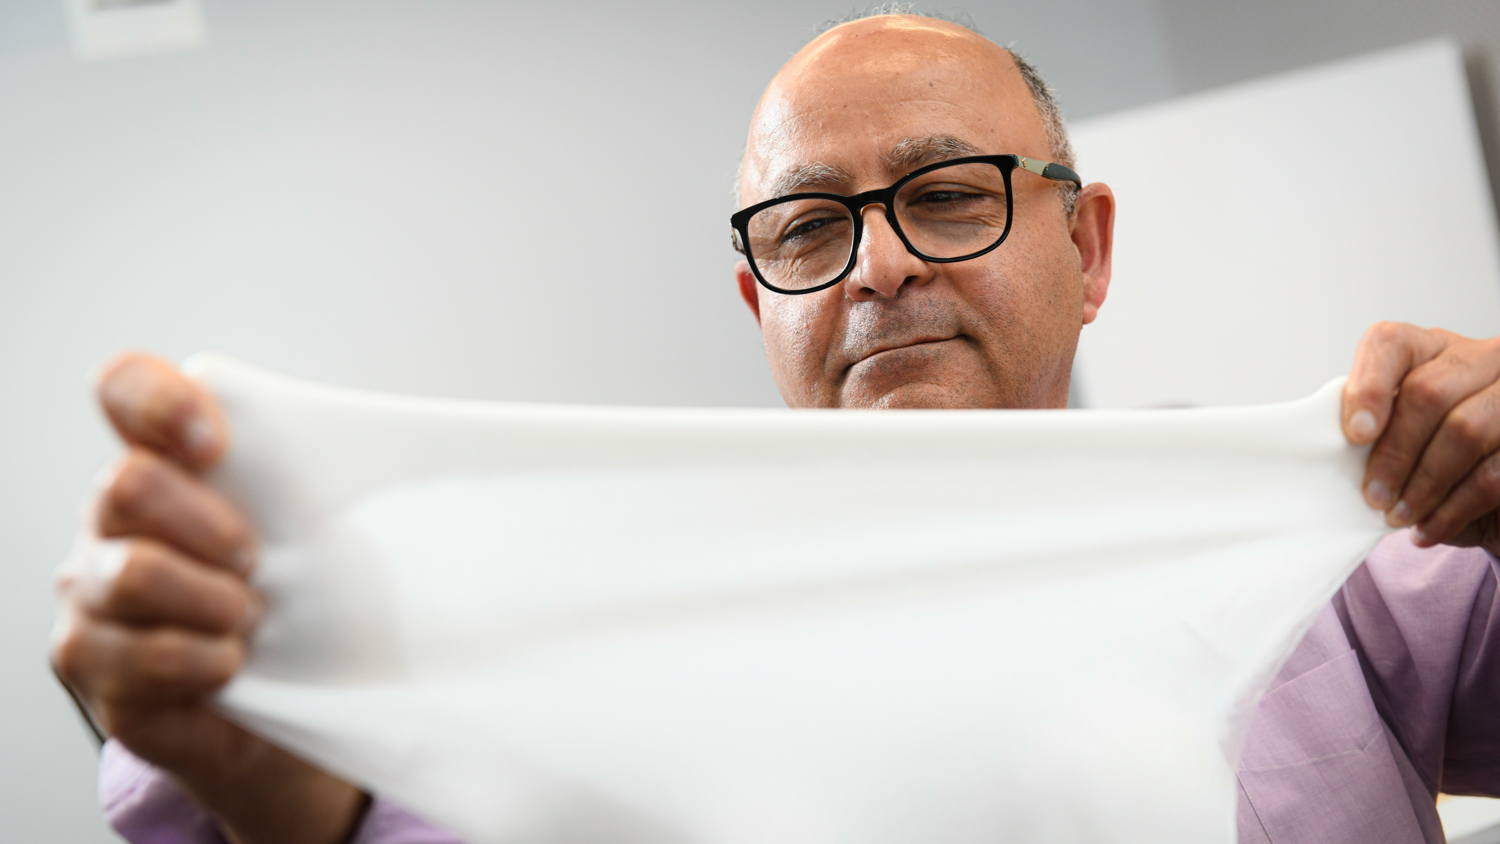 Dr. Behnam Pourdeyhimi holding material